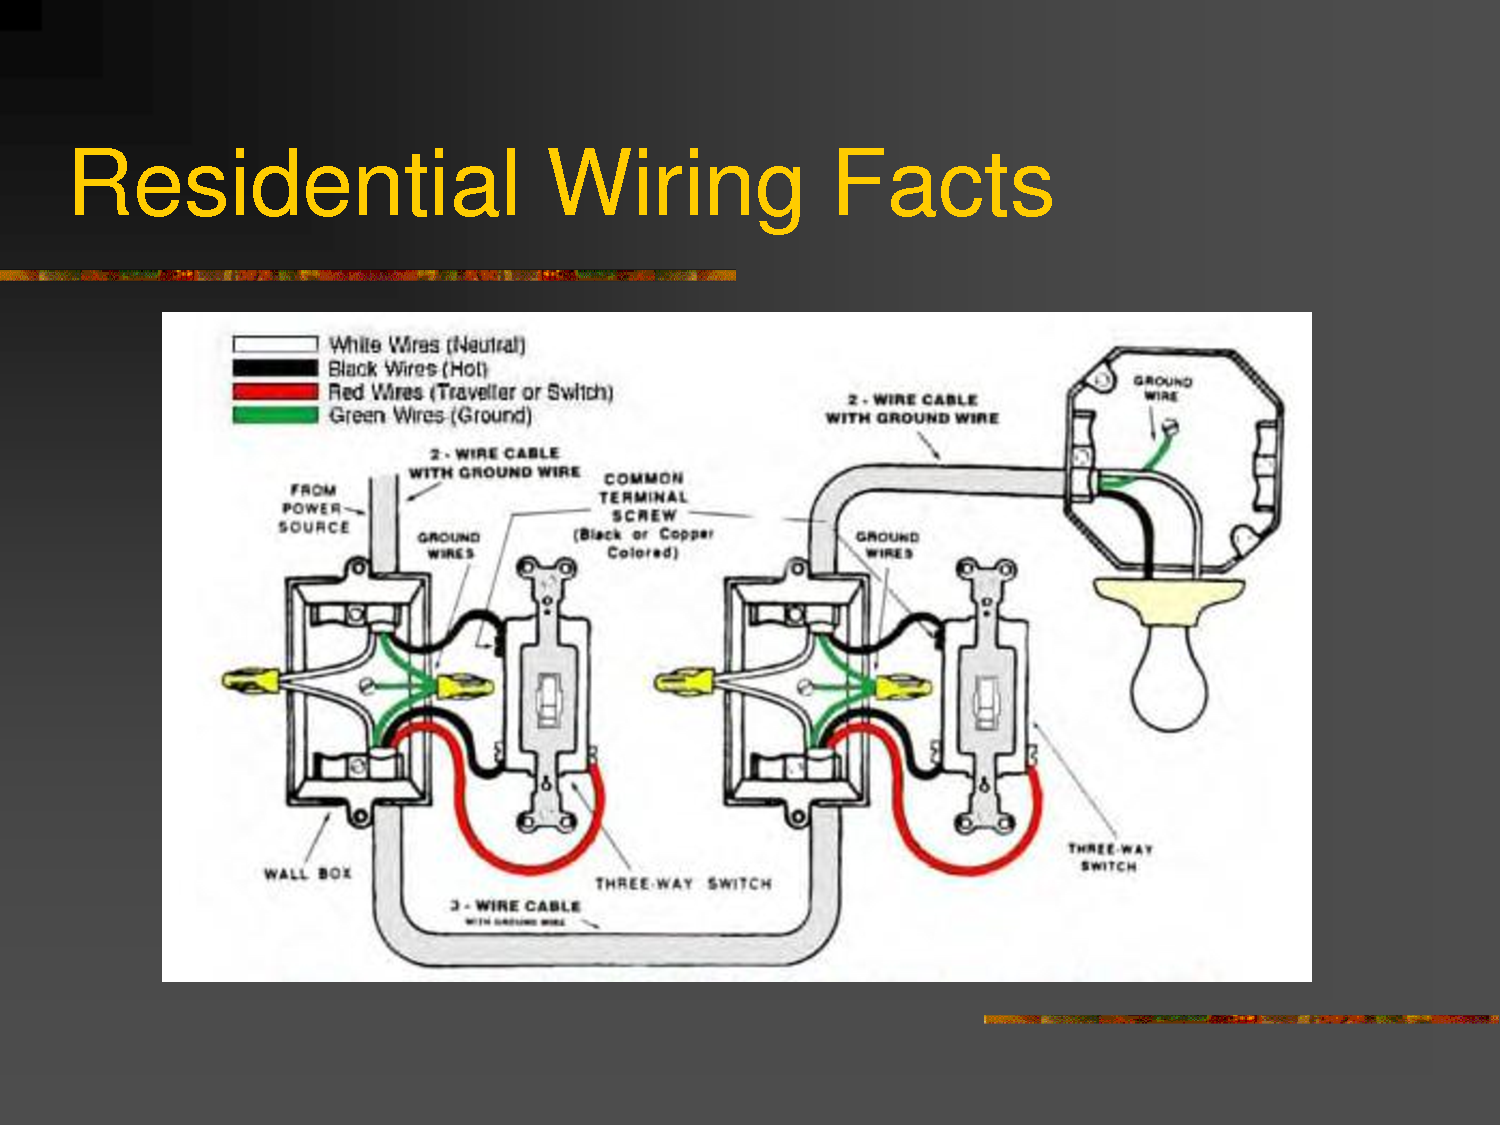 Old House Wiring Methods - Wiring Diagram & Electricity Basics 101 •